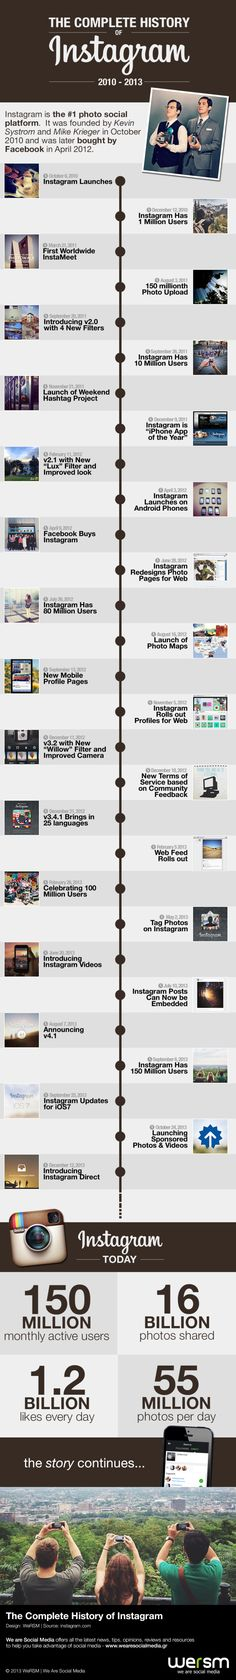 The complete history of #Instagram